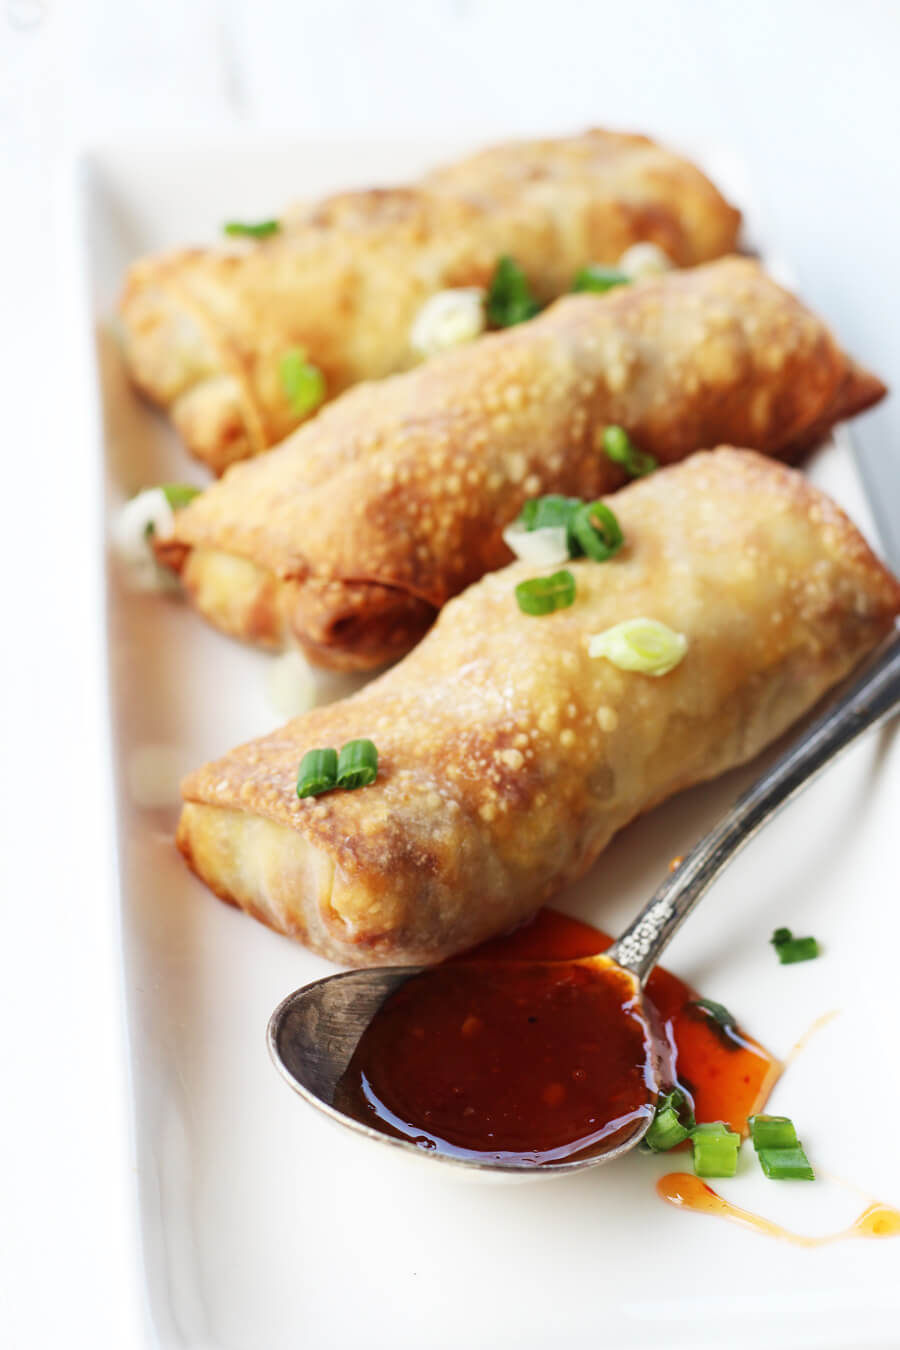 Crisp Asian-inspired egg rolls with savory pork and tender cabbage on the inside....made with our air fryer.#eggrolls #airfryer